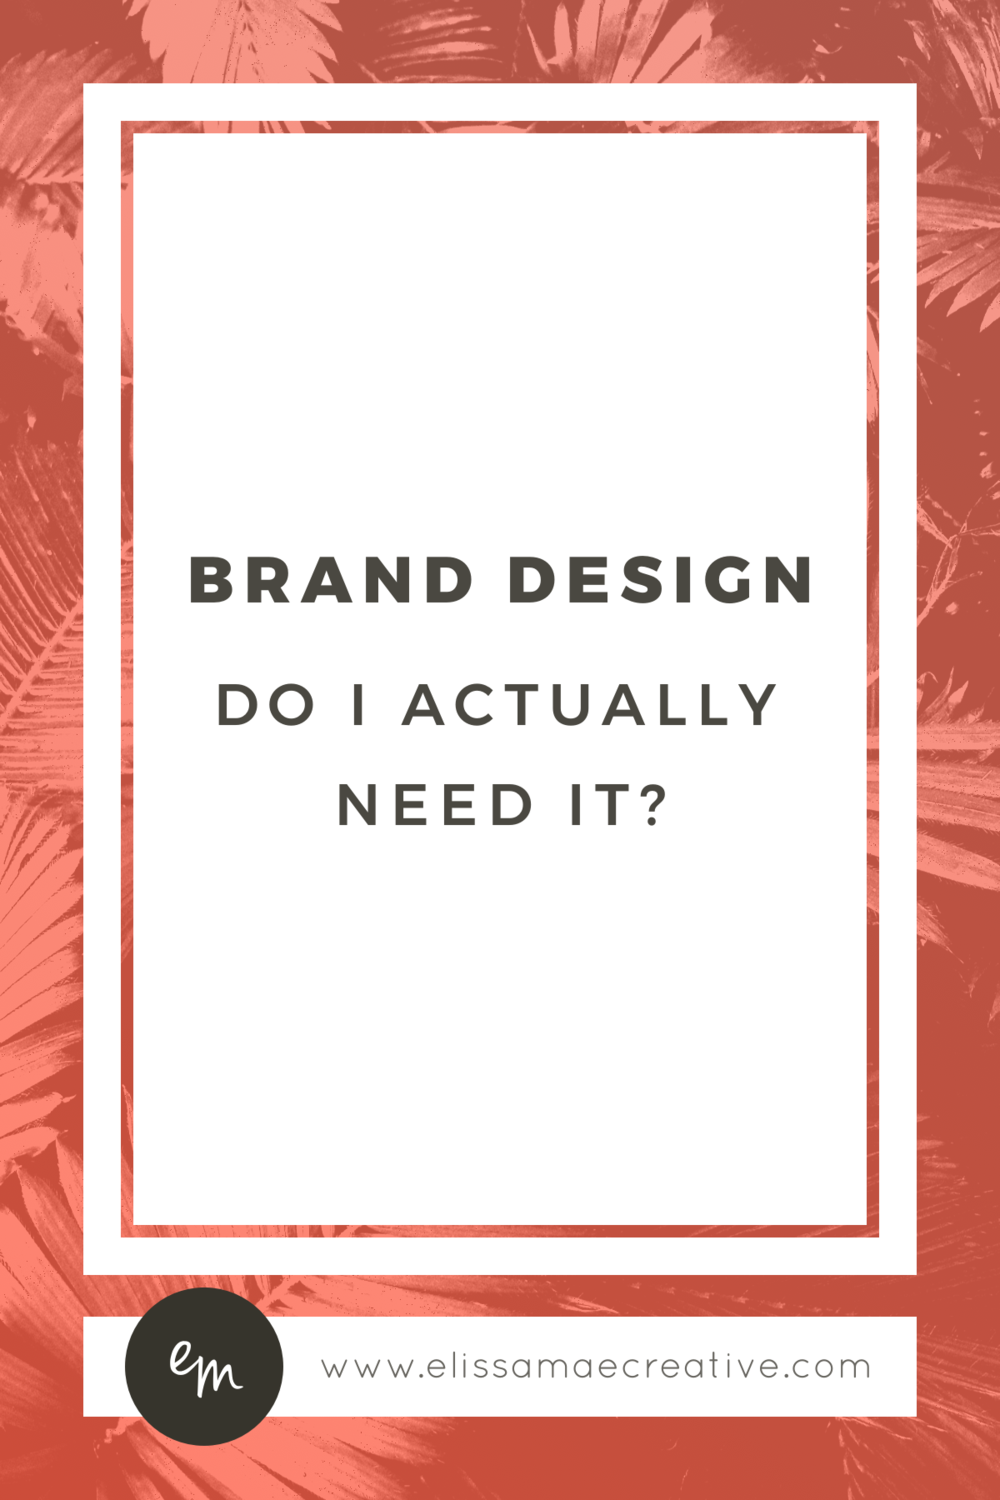 Brand Design: Do I Actually Need It?